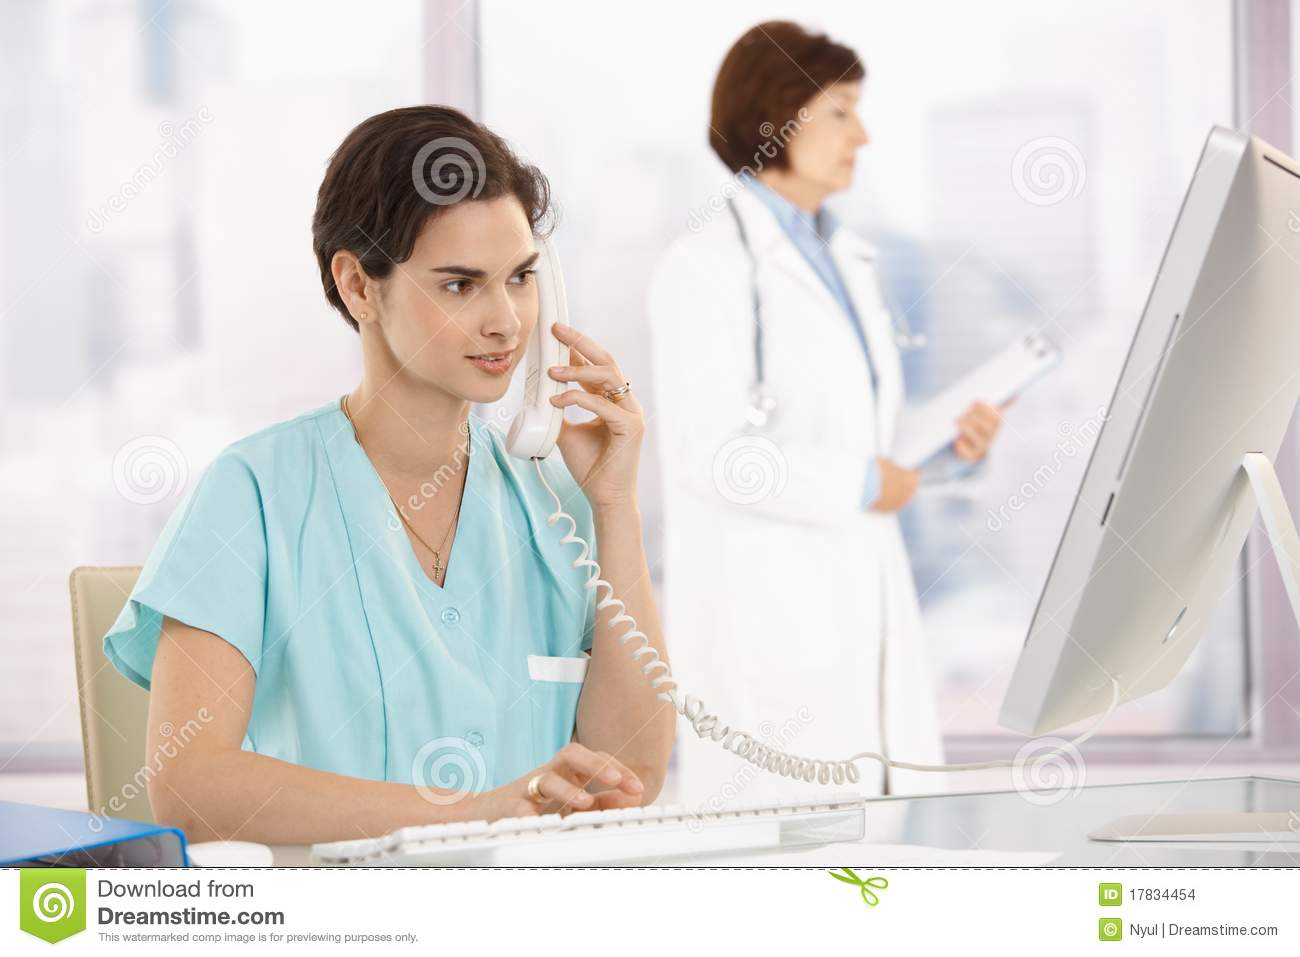 Assistant computer medical phone using